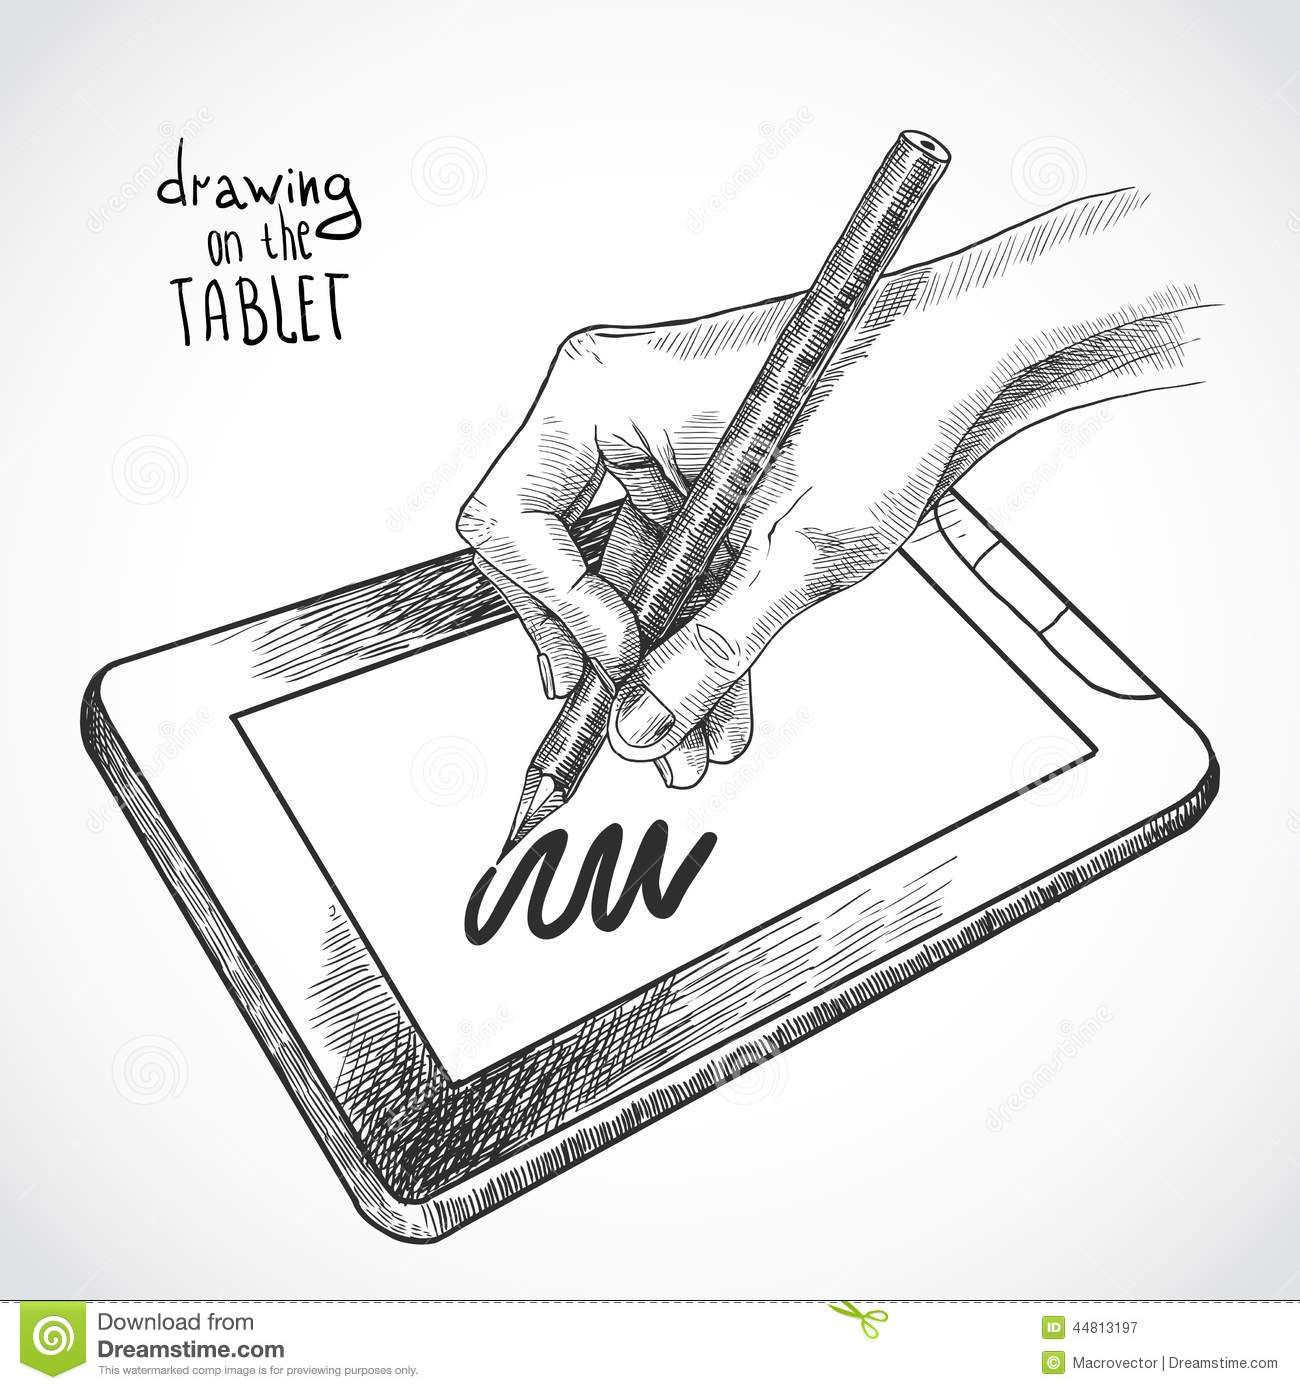 Drawing Lines With Tablet : Hand drawing on the tablet stock vector image